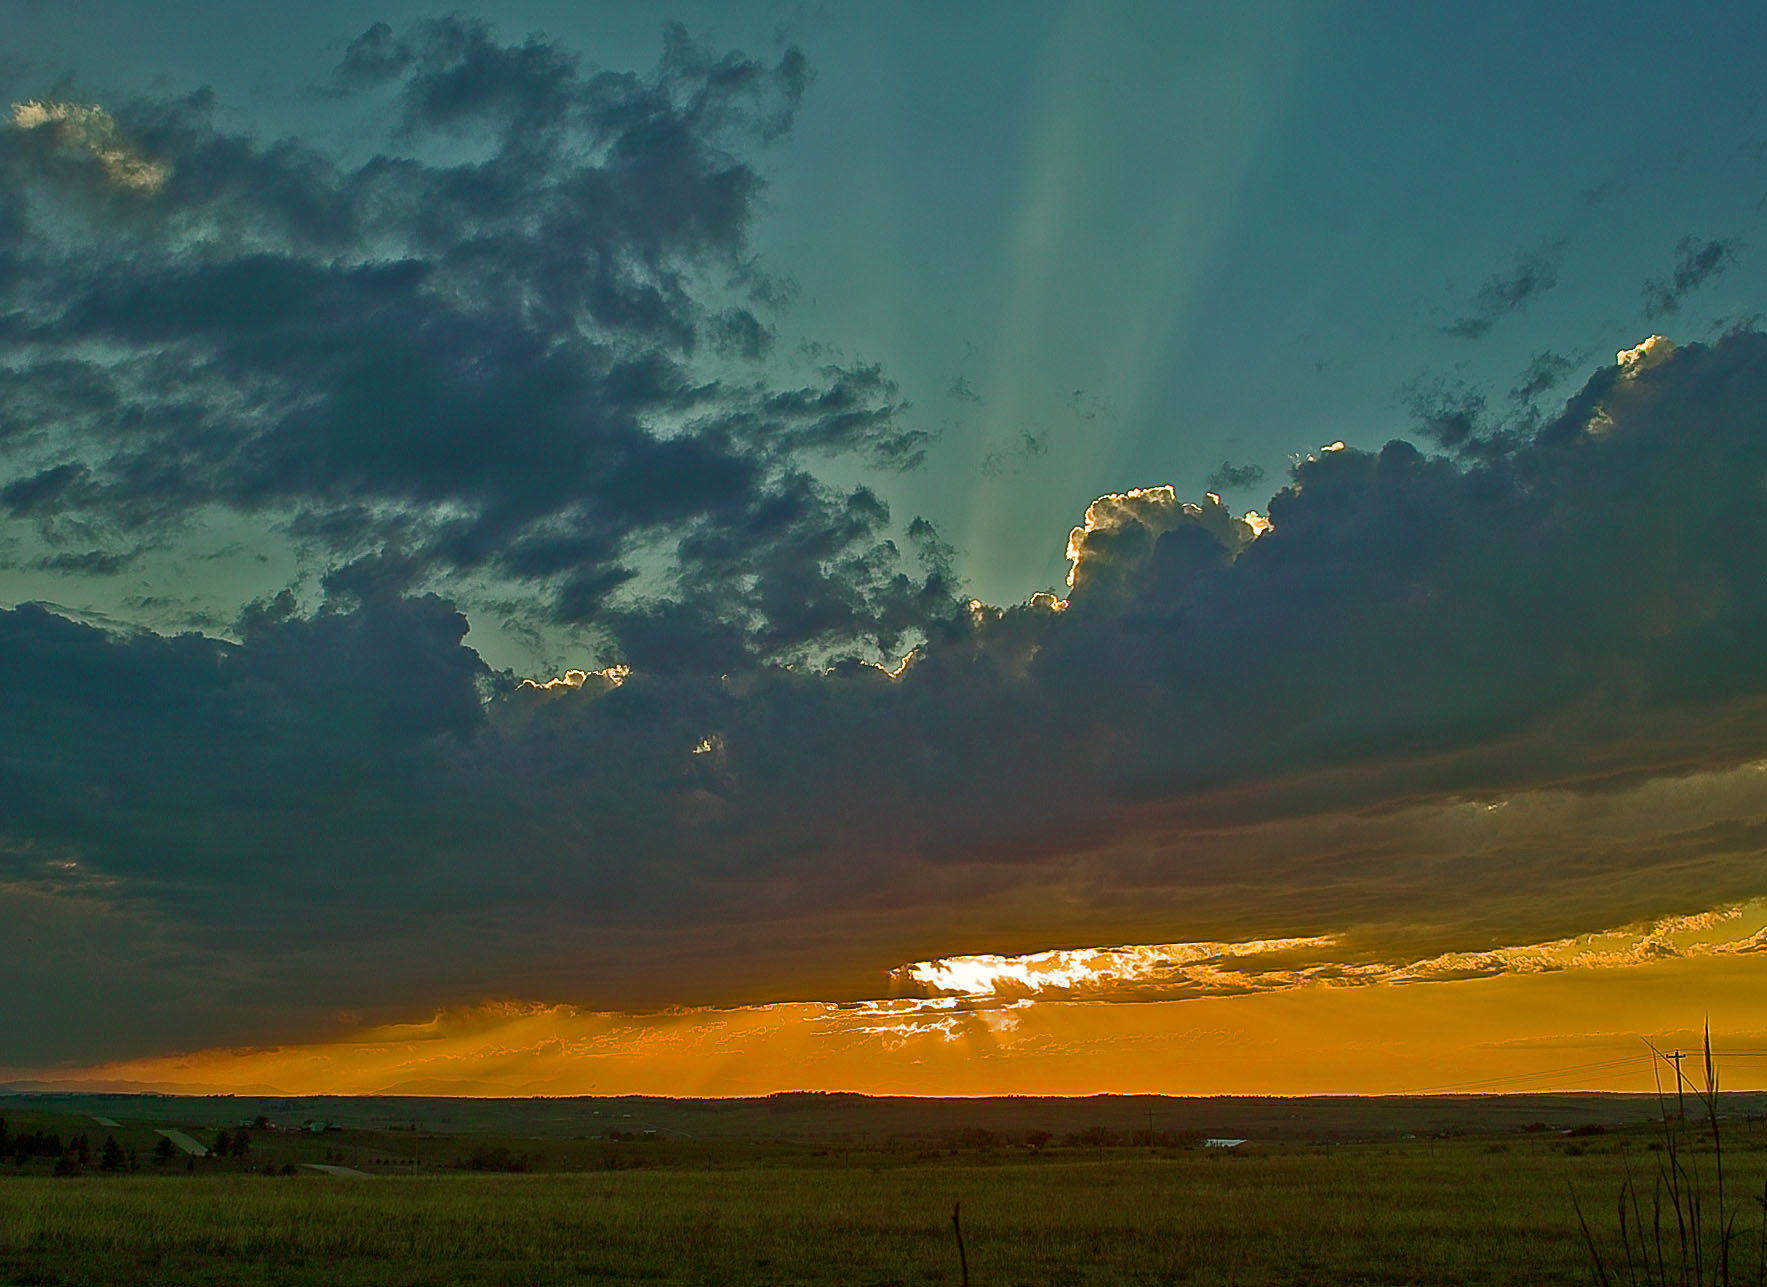 Kiowa, June 11th sunset